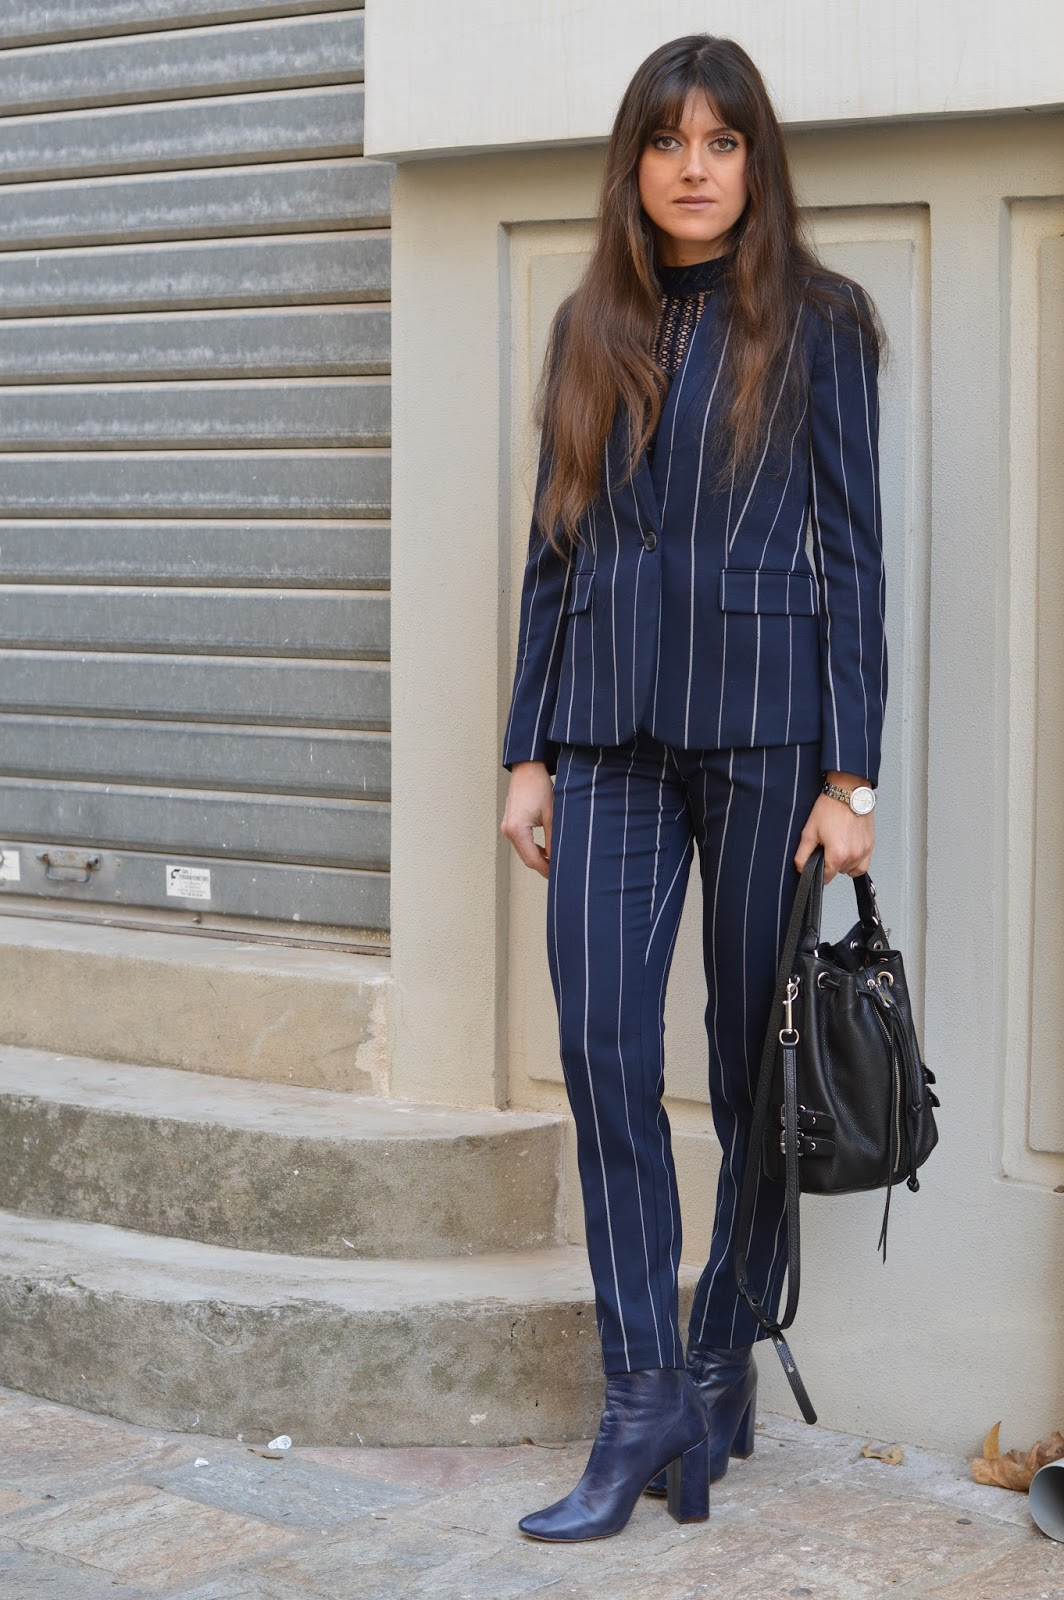 fashion musings diary striped navy blue suit costume bleu marine rayures. Black Bedroom Furniture Sets. Home Design Ideas